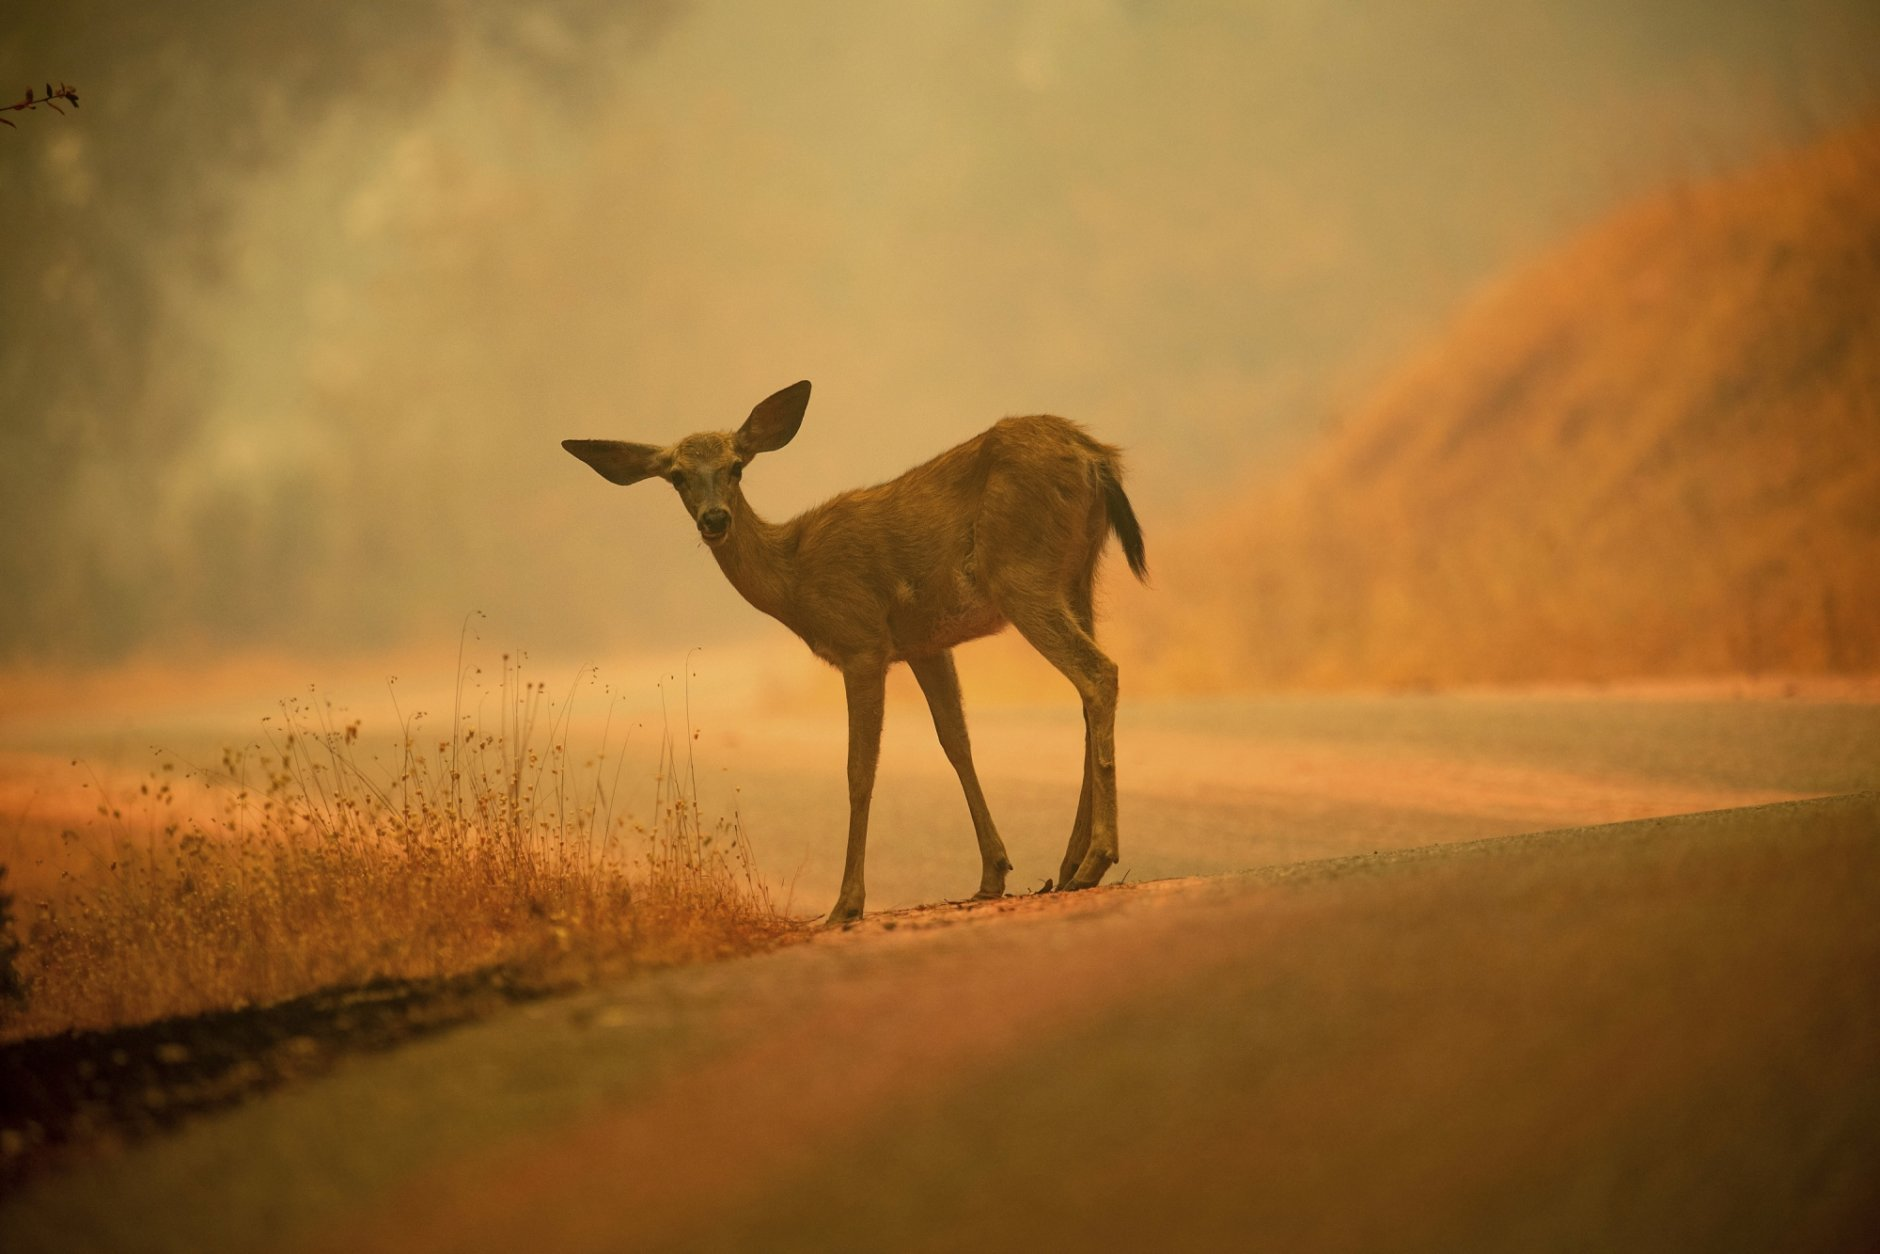 In this July 28, 2018, file photo, a deer grazes along a road covered in fire retardant as the Carr Fire burns near Redding, Calif. More than 80 families who lost their homes in California's deadly Carr Fire in July have learned weeks or months later that their dogs and cats had survived the deadly disaster. A network of about 35 volunteers, called Carr Fire Pet Rescue and Reunification, is responsible for many of the happy endings and continues to track and catch missing pets nearly two months after the fire was extinguished. (AP Photo/Noah Berger, File)